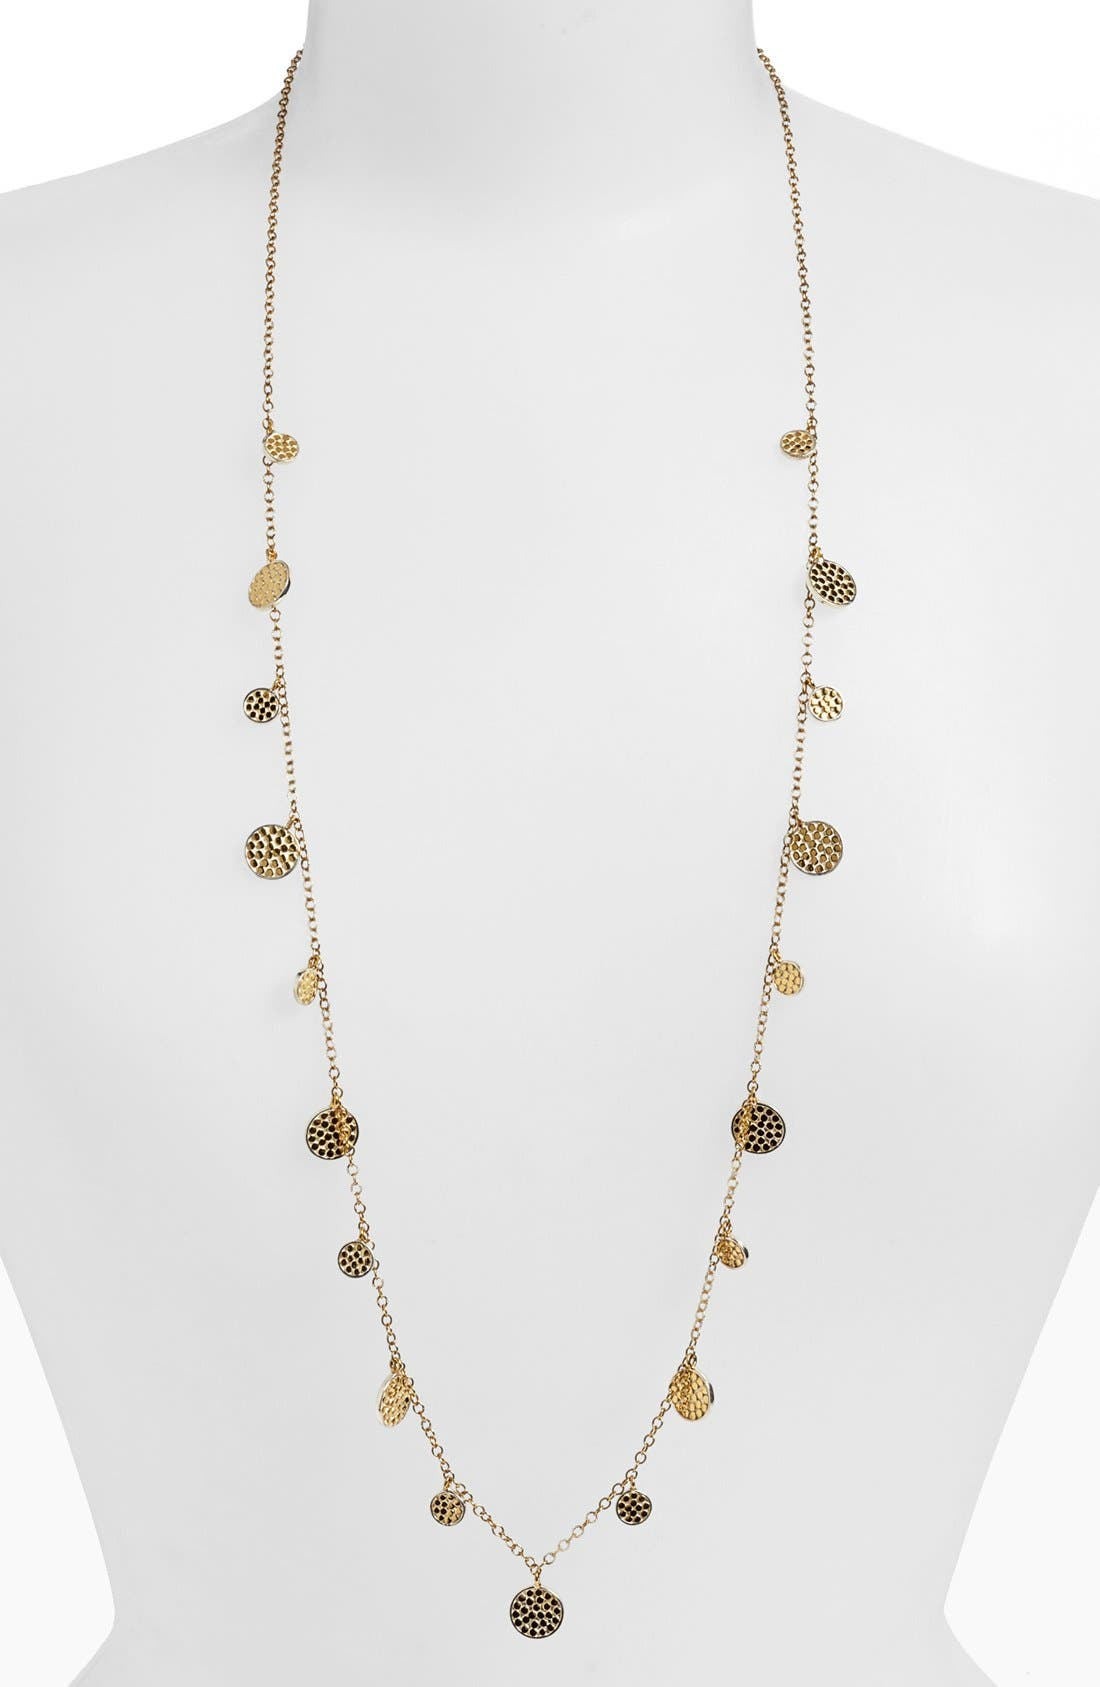 Alternate Image 1 Selected - Anna Beck 'Gili' Long Charm Necklace